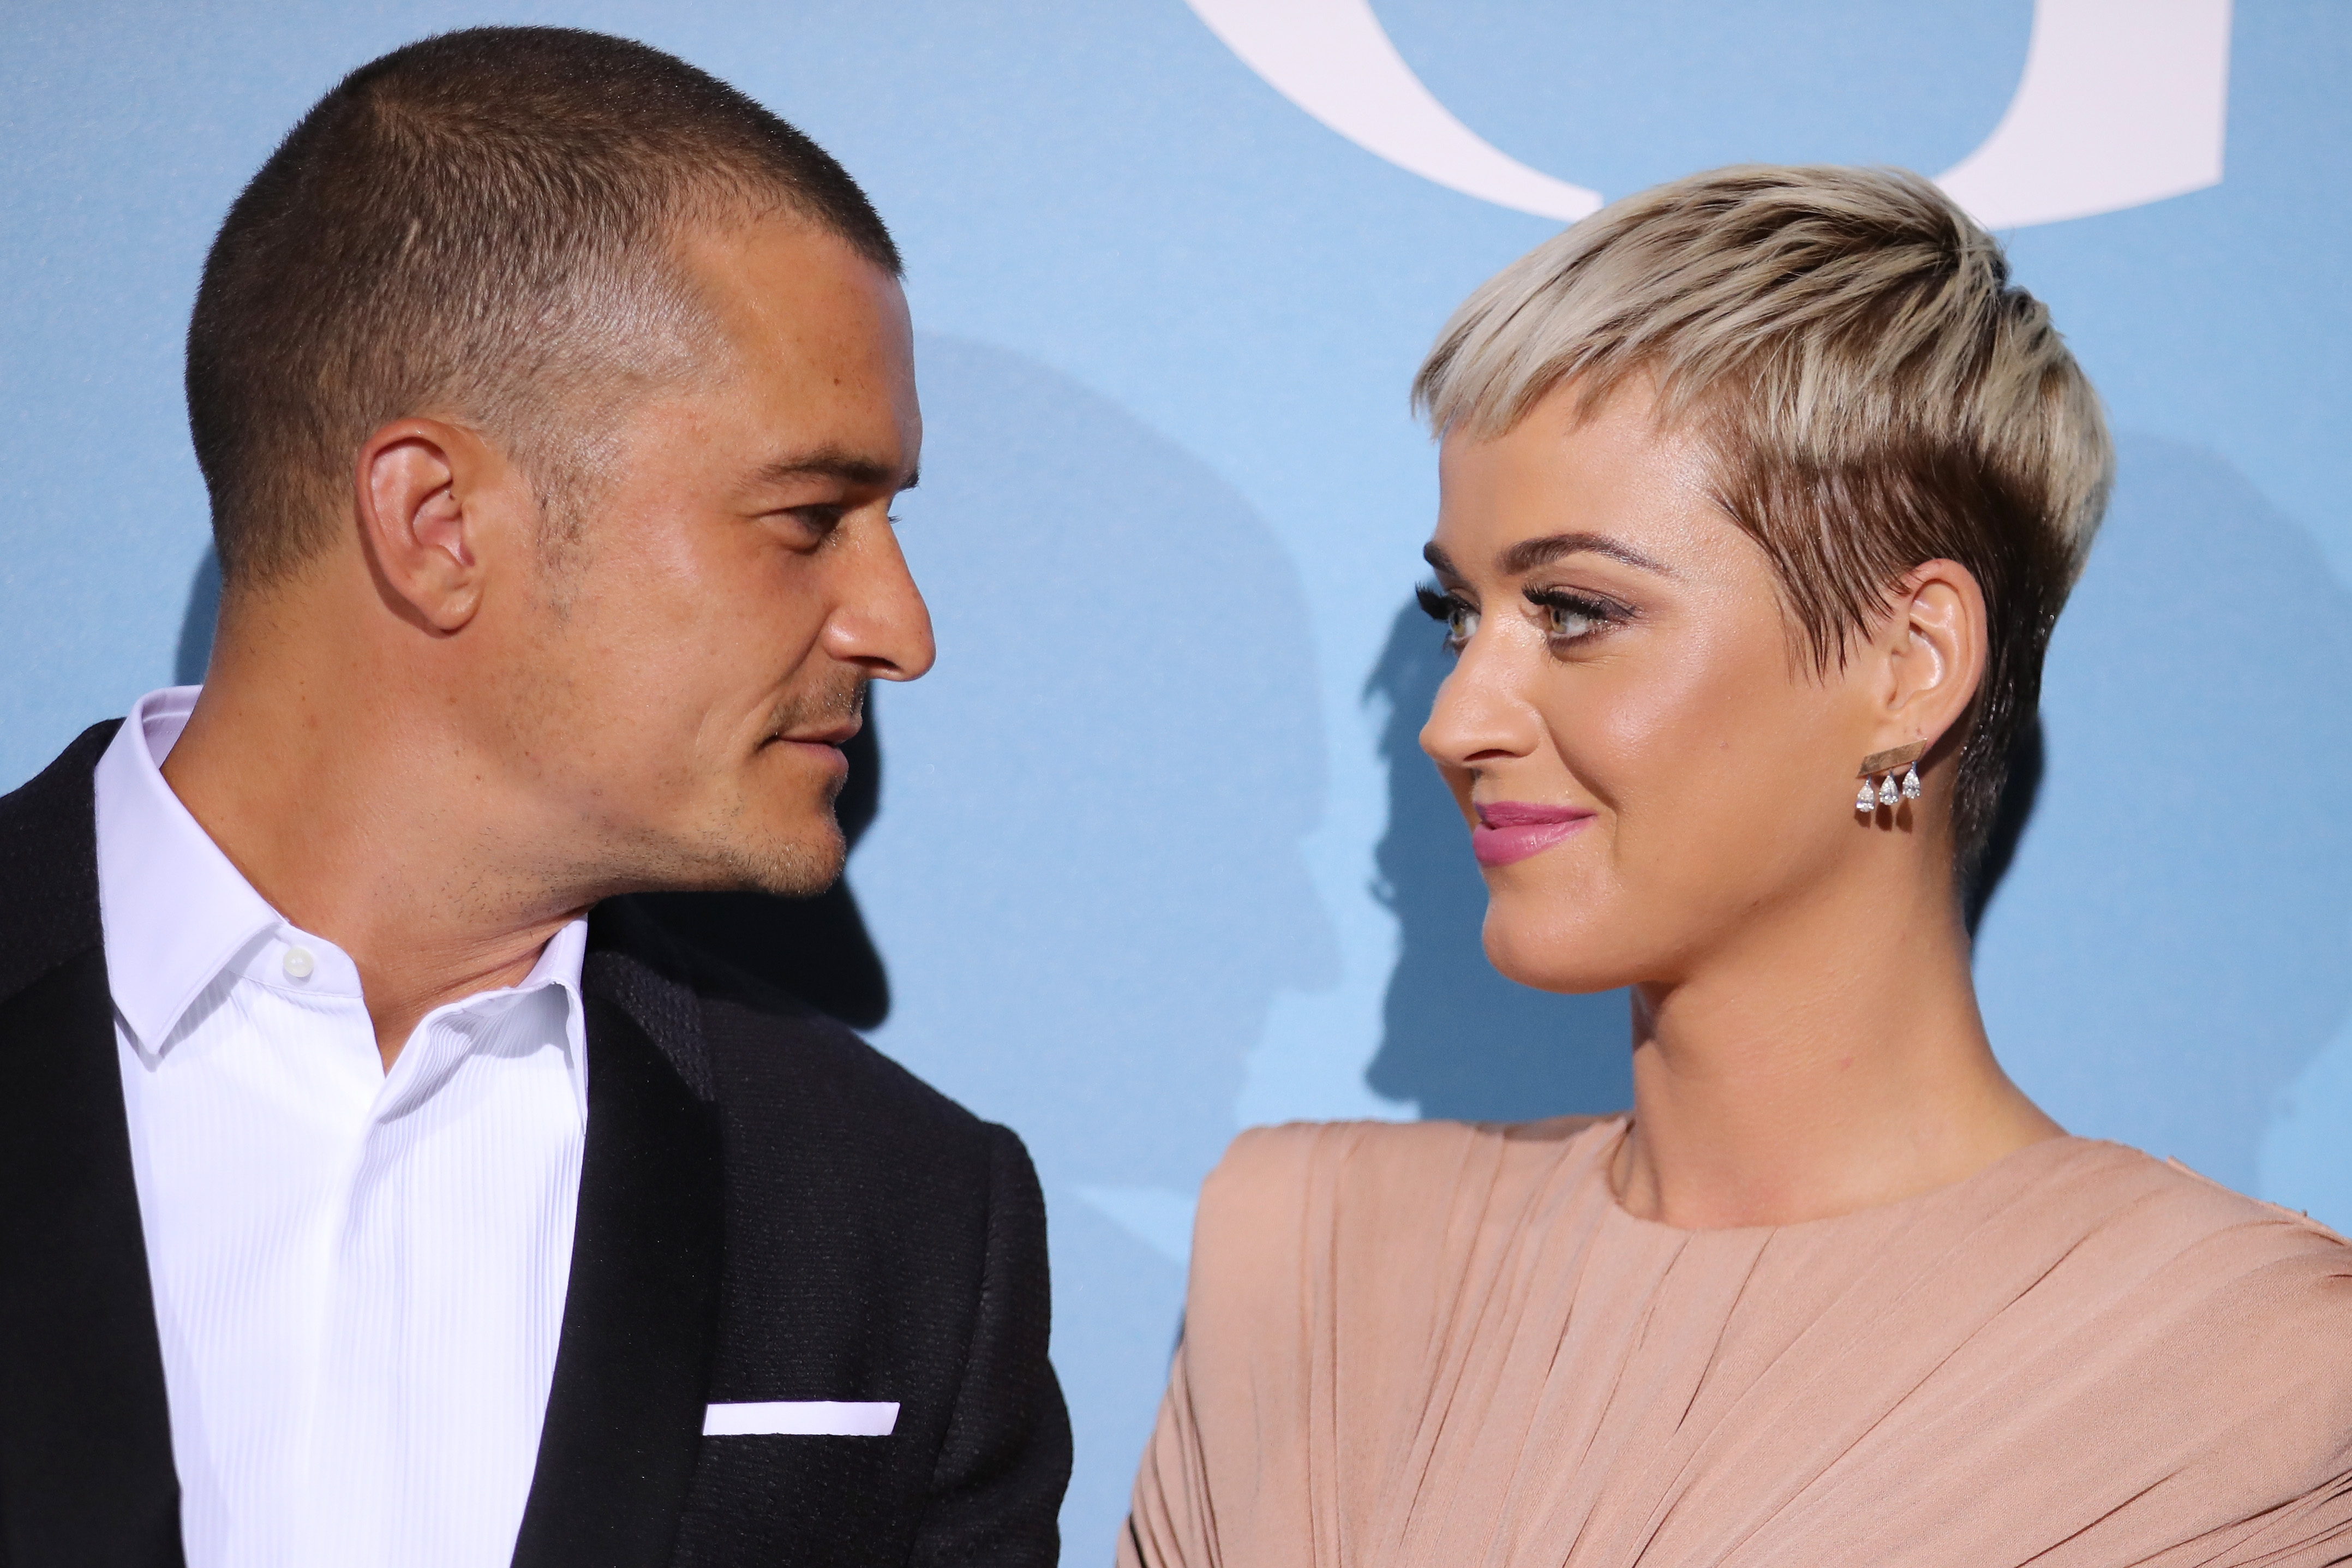 Orlando Bloom ripped jacket and smashed champagne bottle during Katy Perry proposal